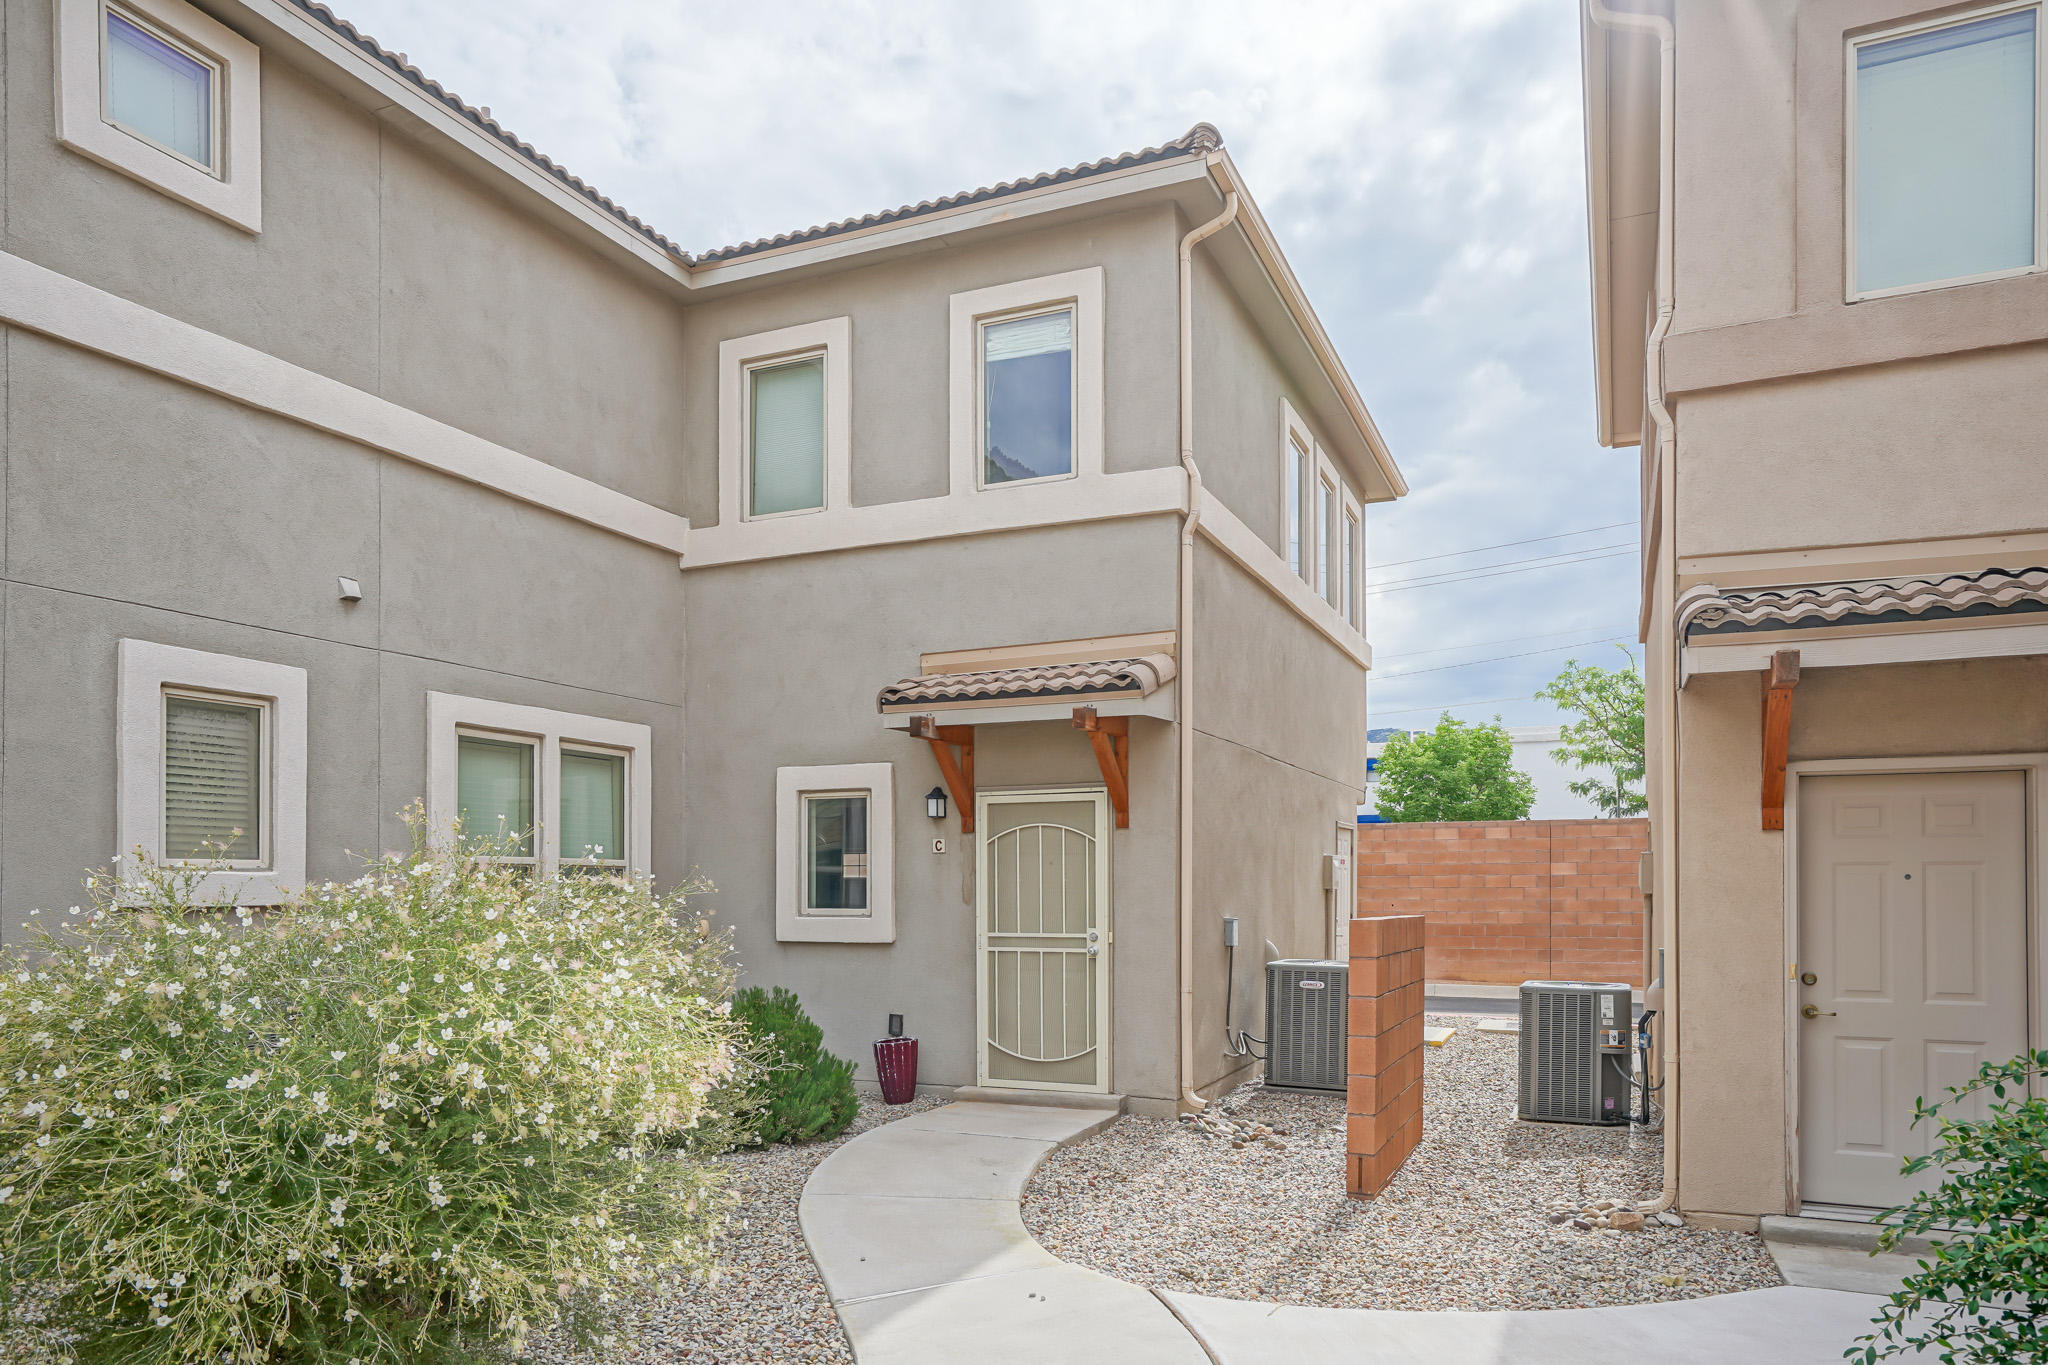 Must see Townhome located in the gated Presidio community. Open concept floorplan with raised ceiling and lot of natural light. Beautiful Sandia Mountain views from the private balcony. Stunning kitchen with dark cabinets, Corian countertops, Kitchen island with room for seating, under-mount sink, tile backsplash, and gas range! The owner's suite features a huge walk-in closet, dual sinks, and a large shower/tub. Refrigerated Air. HOA covers the exterior of the building, common areas, landscaping, and clubhouse, which features a fitness center, entertaining space, BBQ, and playground. Close to Restaurants, Shopping, Quick access to I-40 and Kirtland Air Force Base! More to come, including photos and a virtual walkthrough tour!